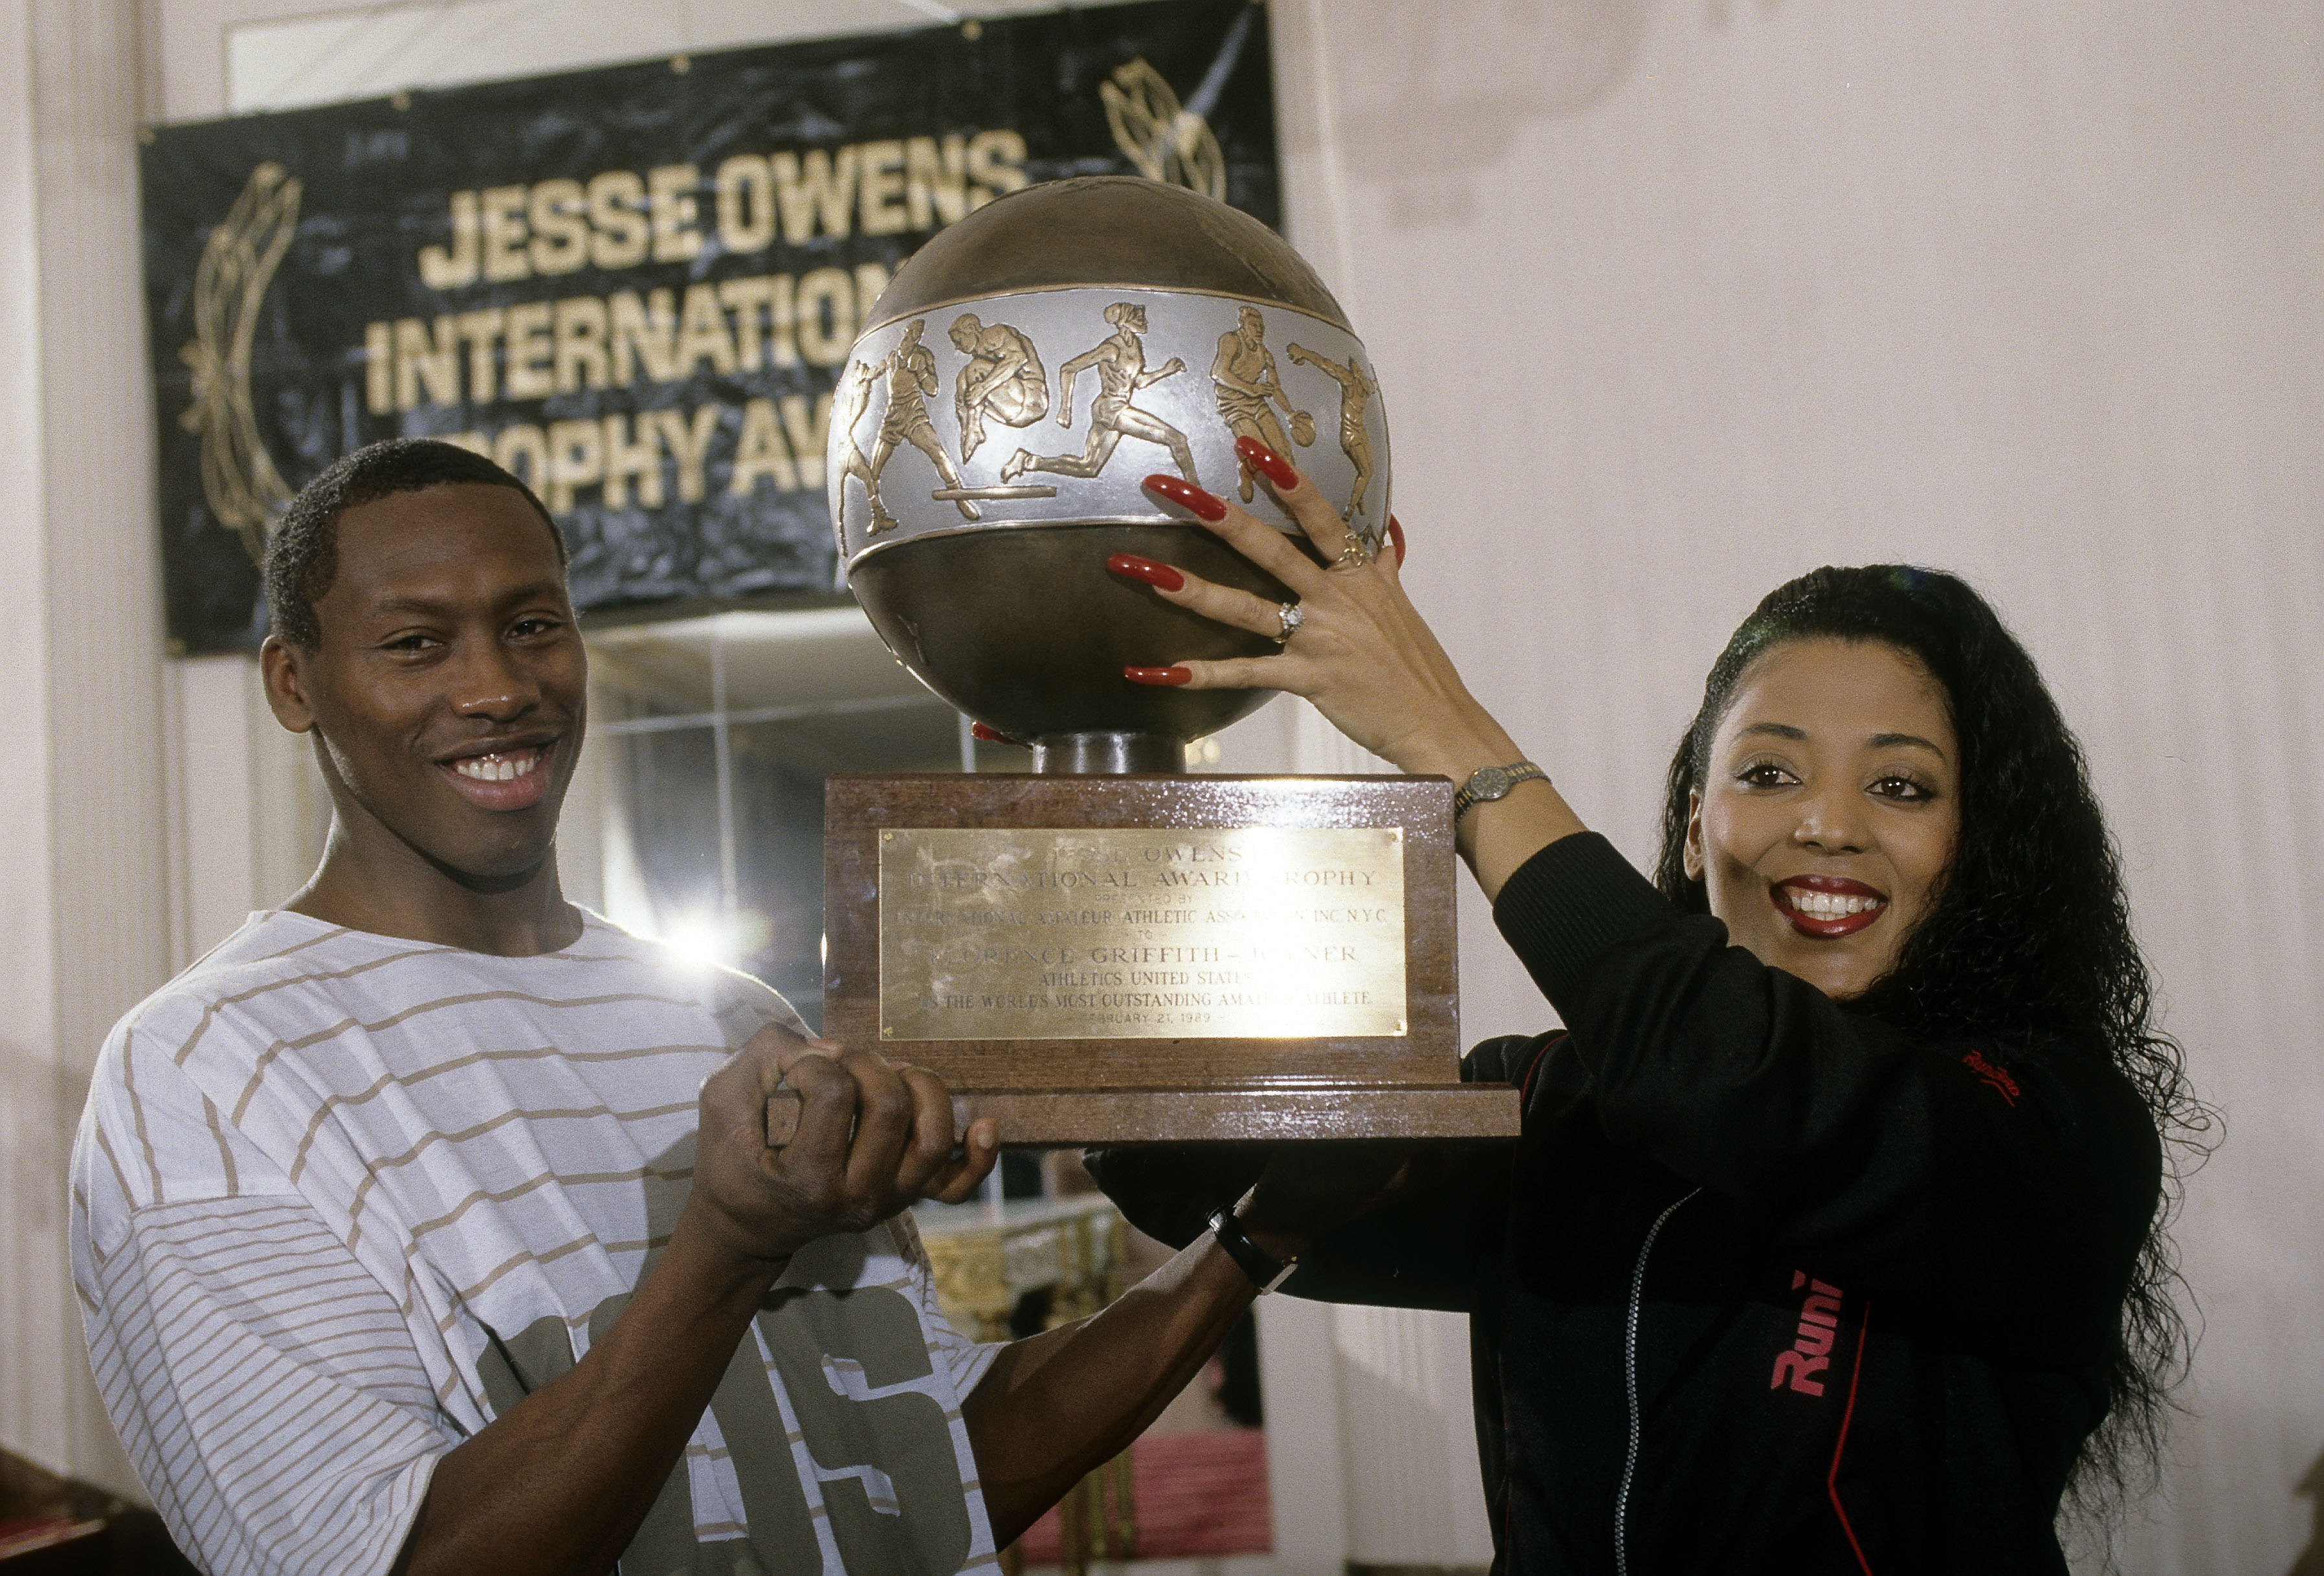 """Florence Griffith Joyner and her husband Al Joyner hold the """"Jesse Owens International Awards Trophy"""" presented to her on February 21, 1989 